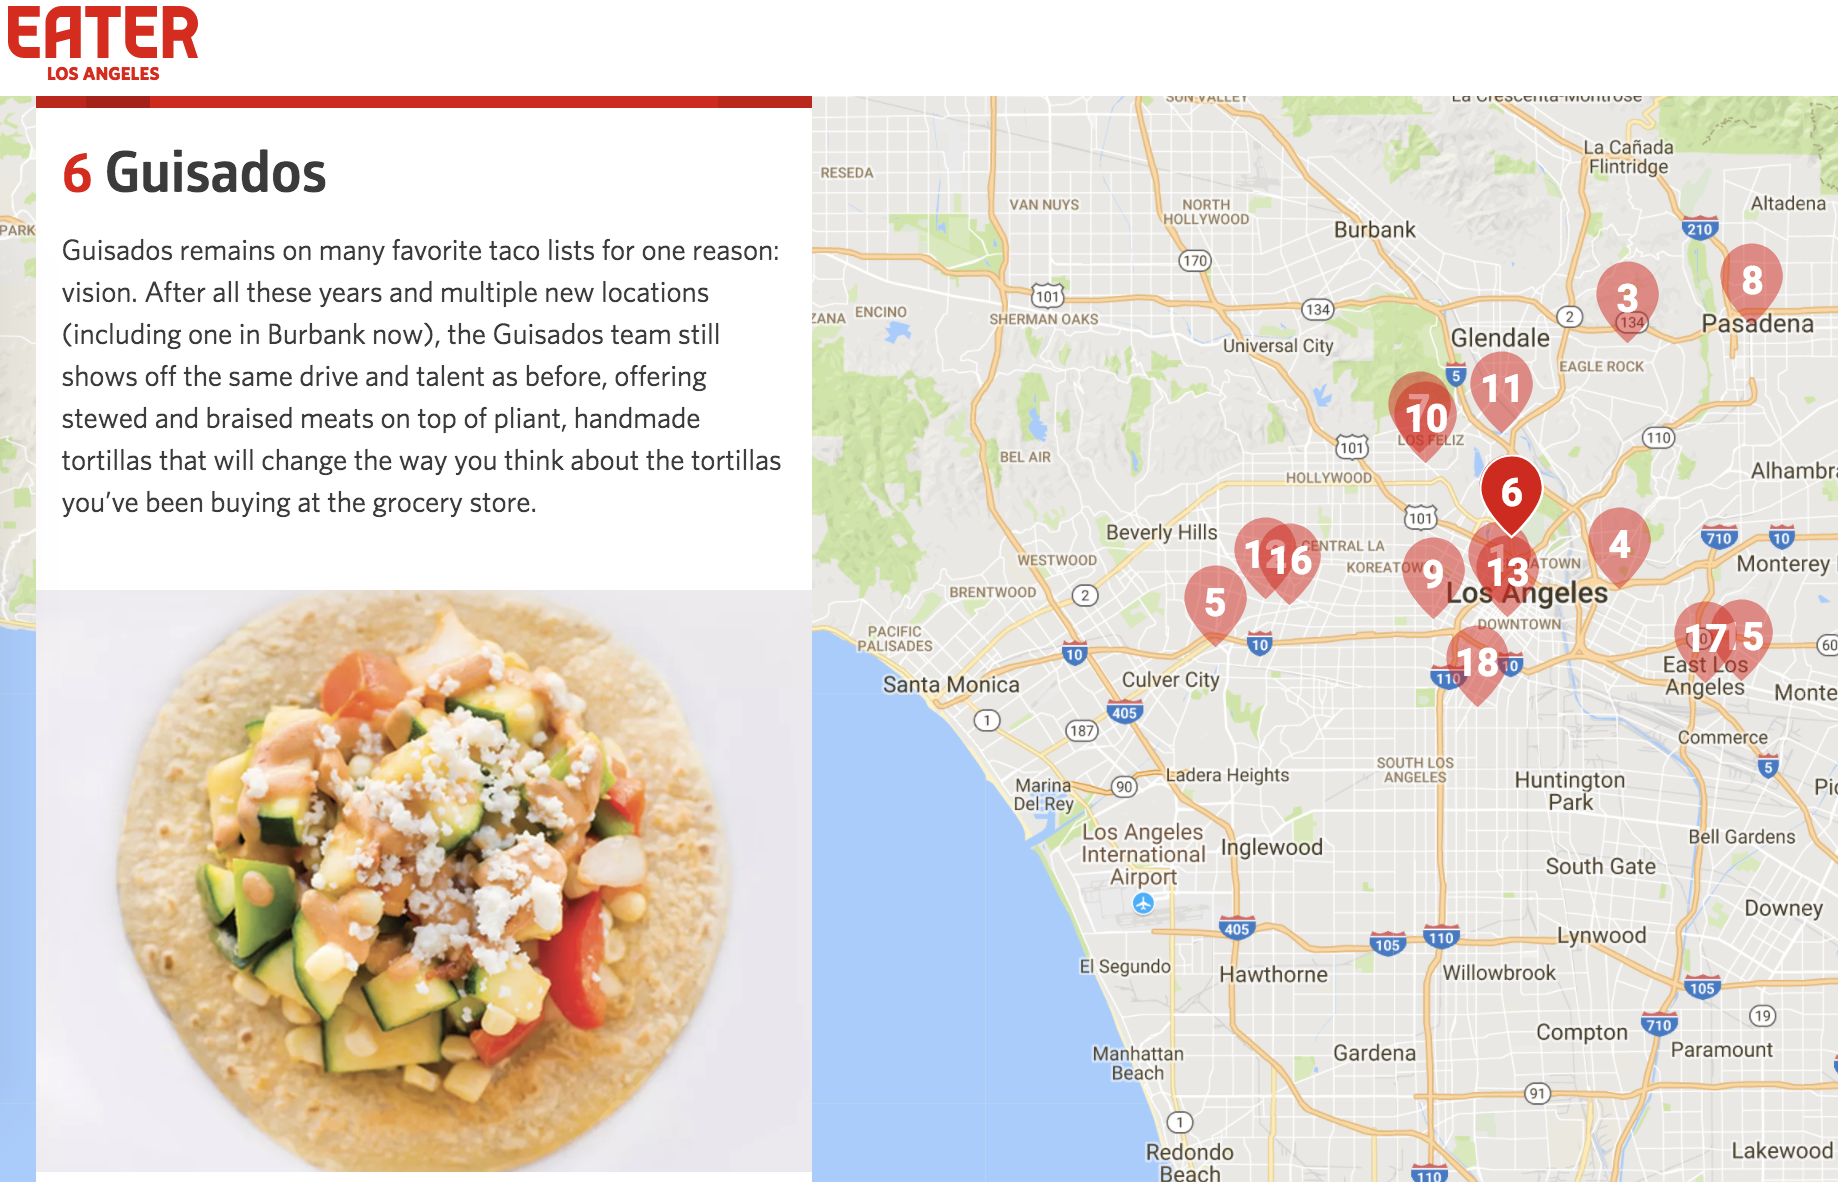 2017. A Quick Guide to Tacos in Los Angeles